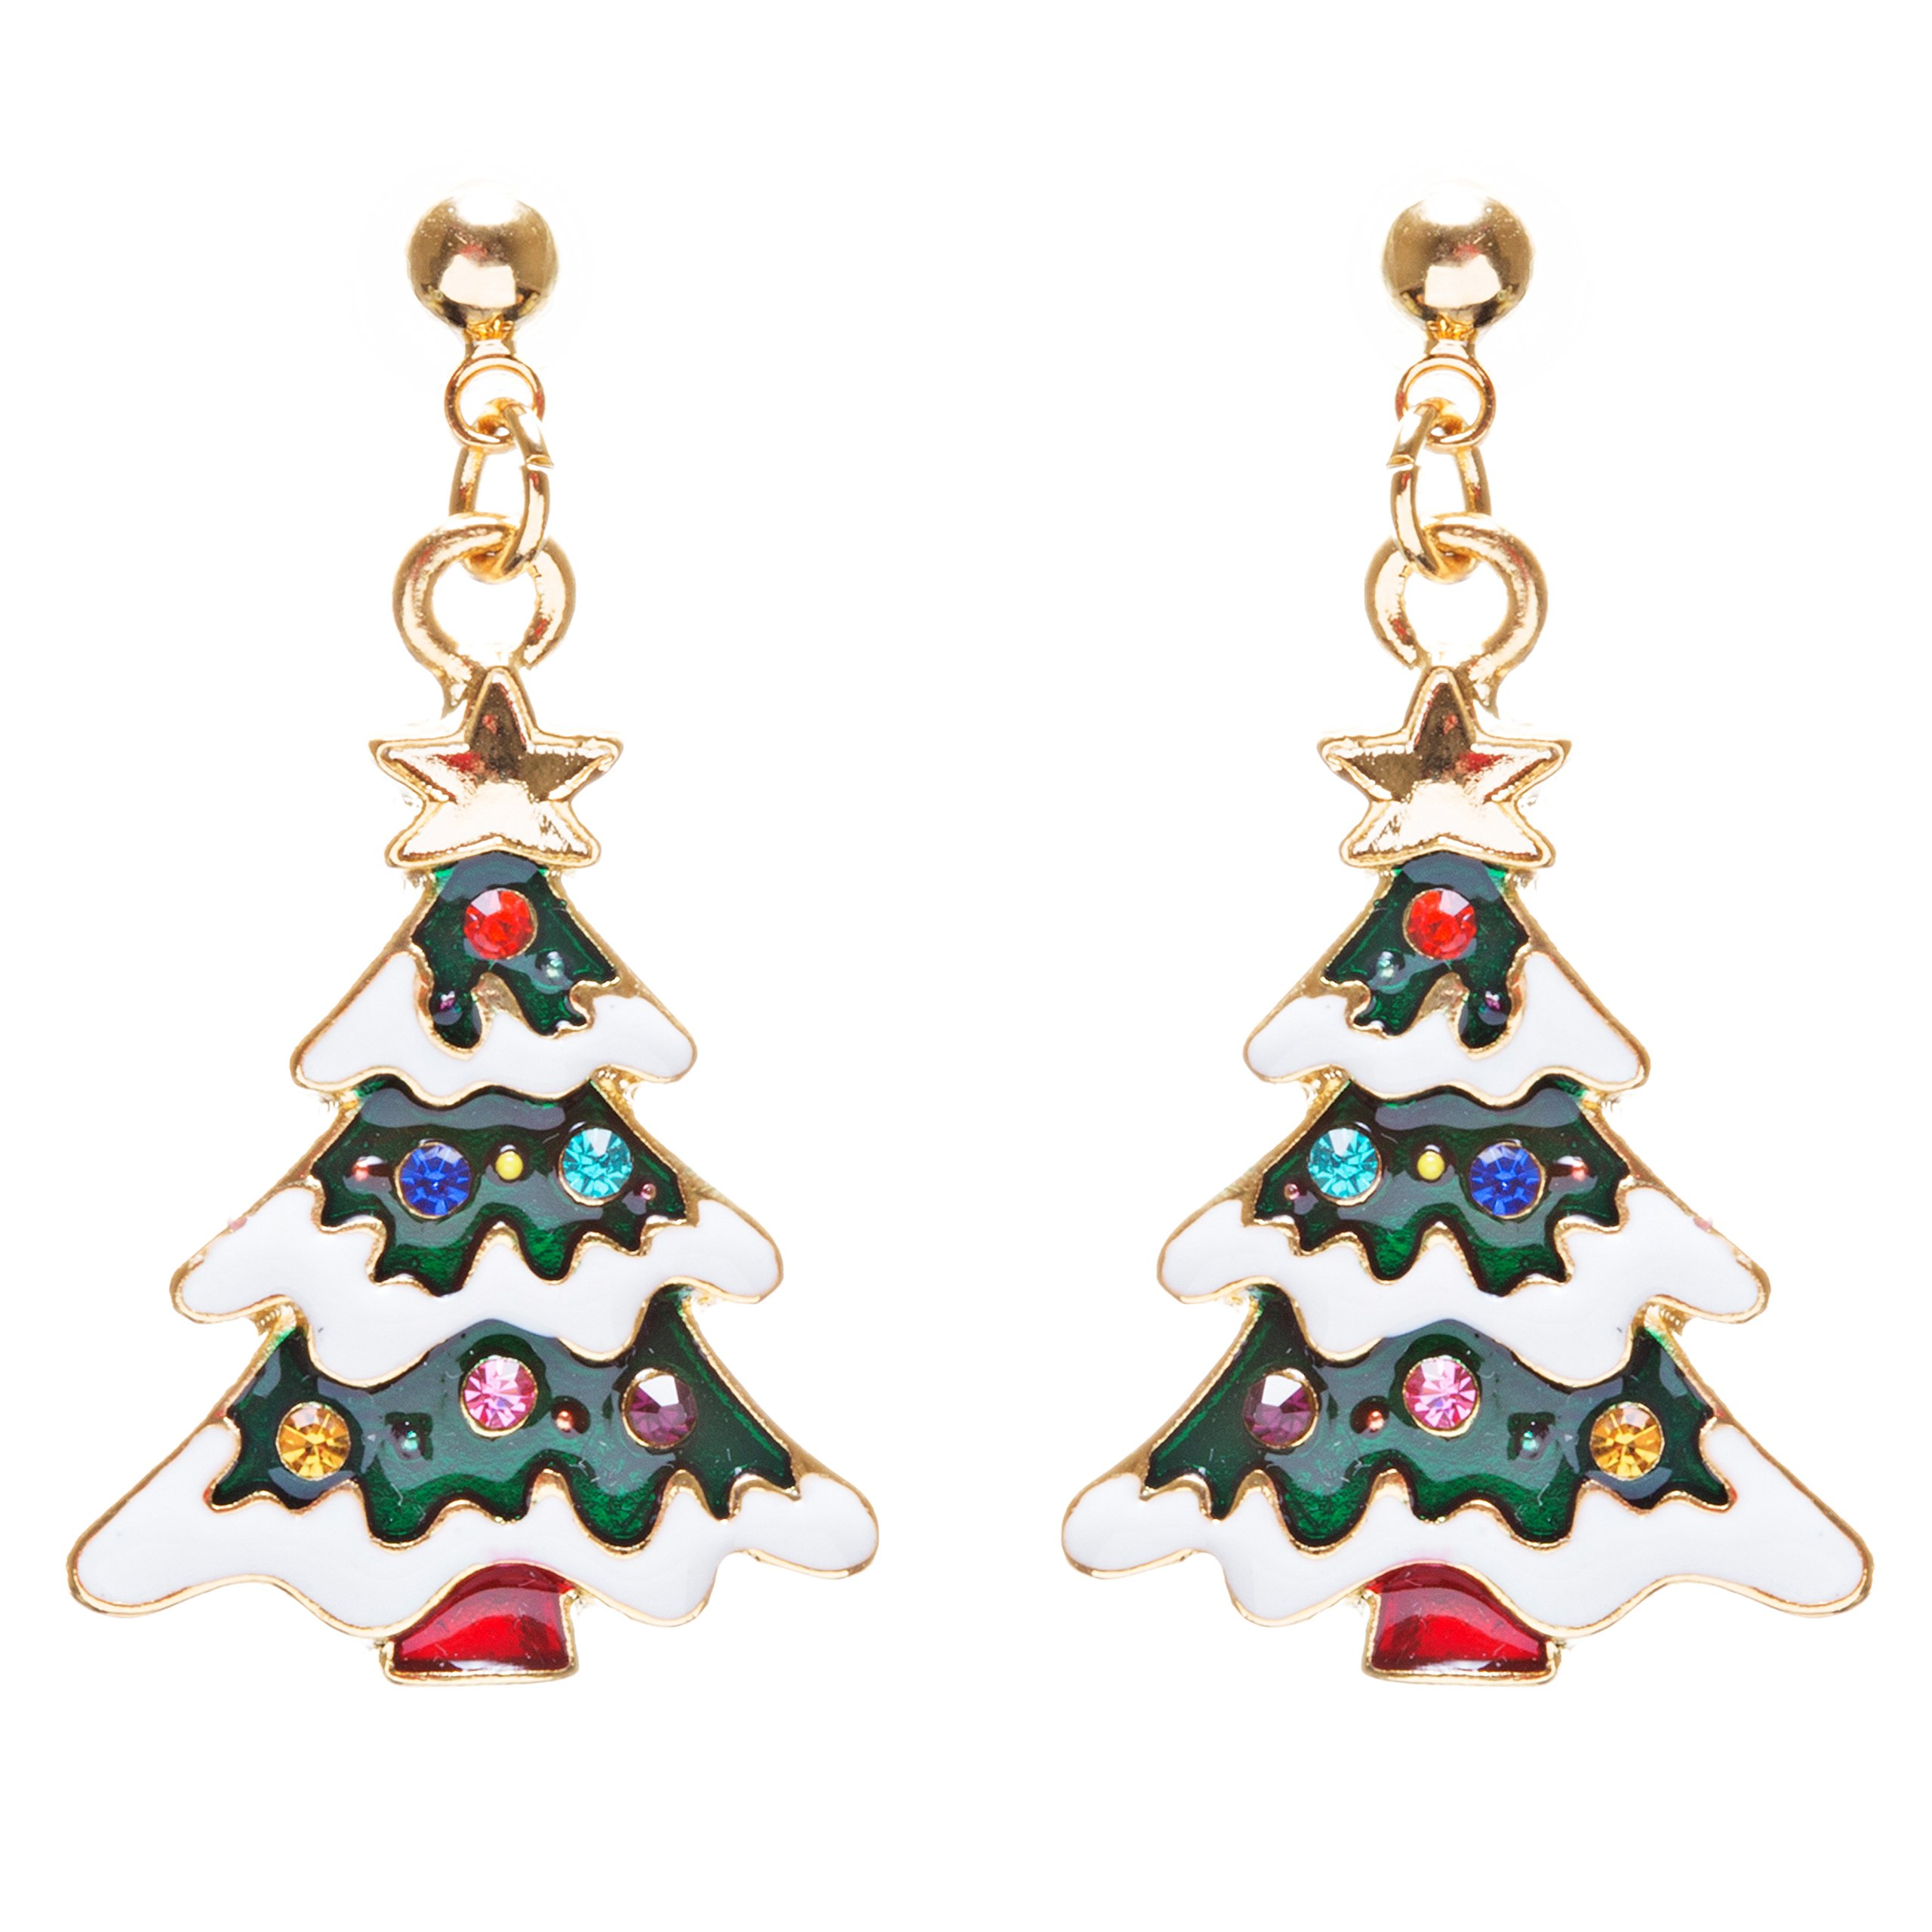 ACCESSORIESFOREVER Christmas Jewelry Crystal Rhinestone Lovely Holiday Tree Earrings E903 Multi